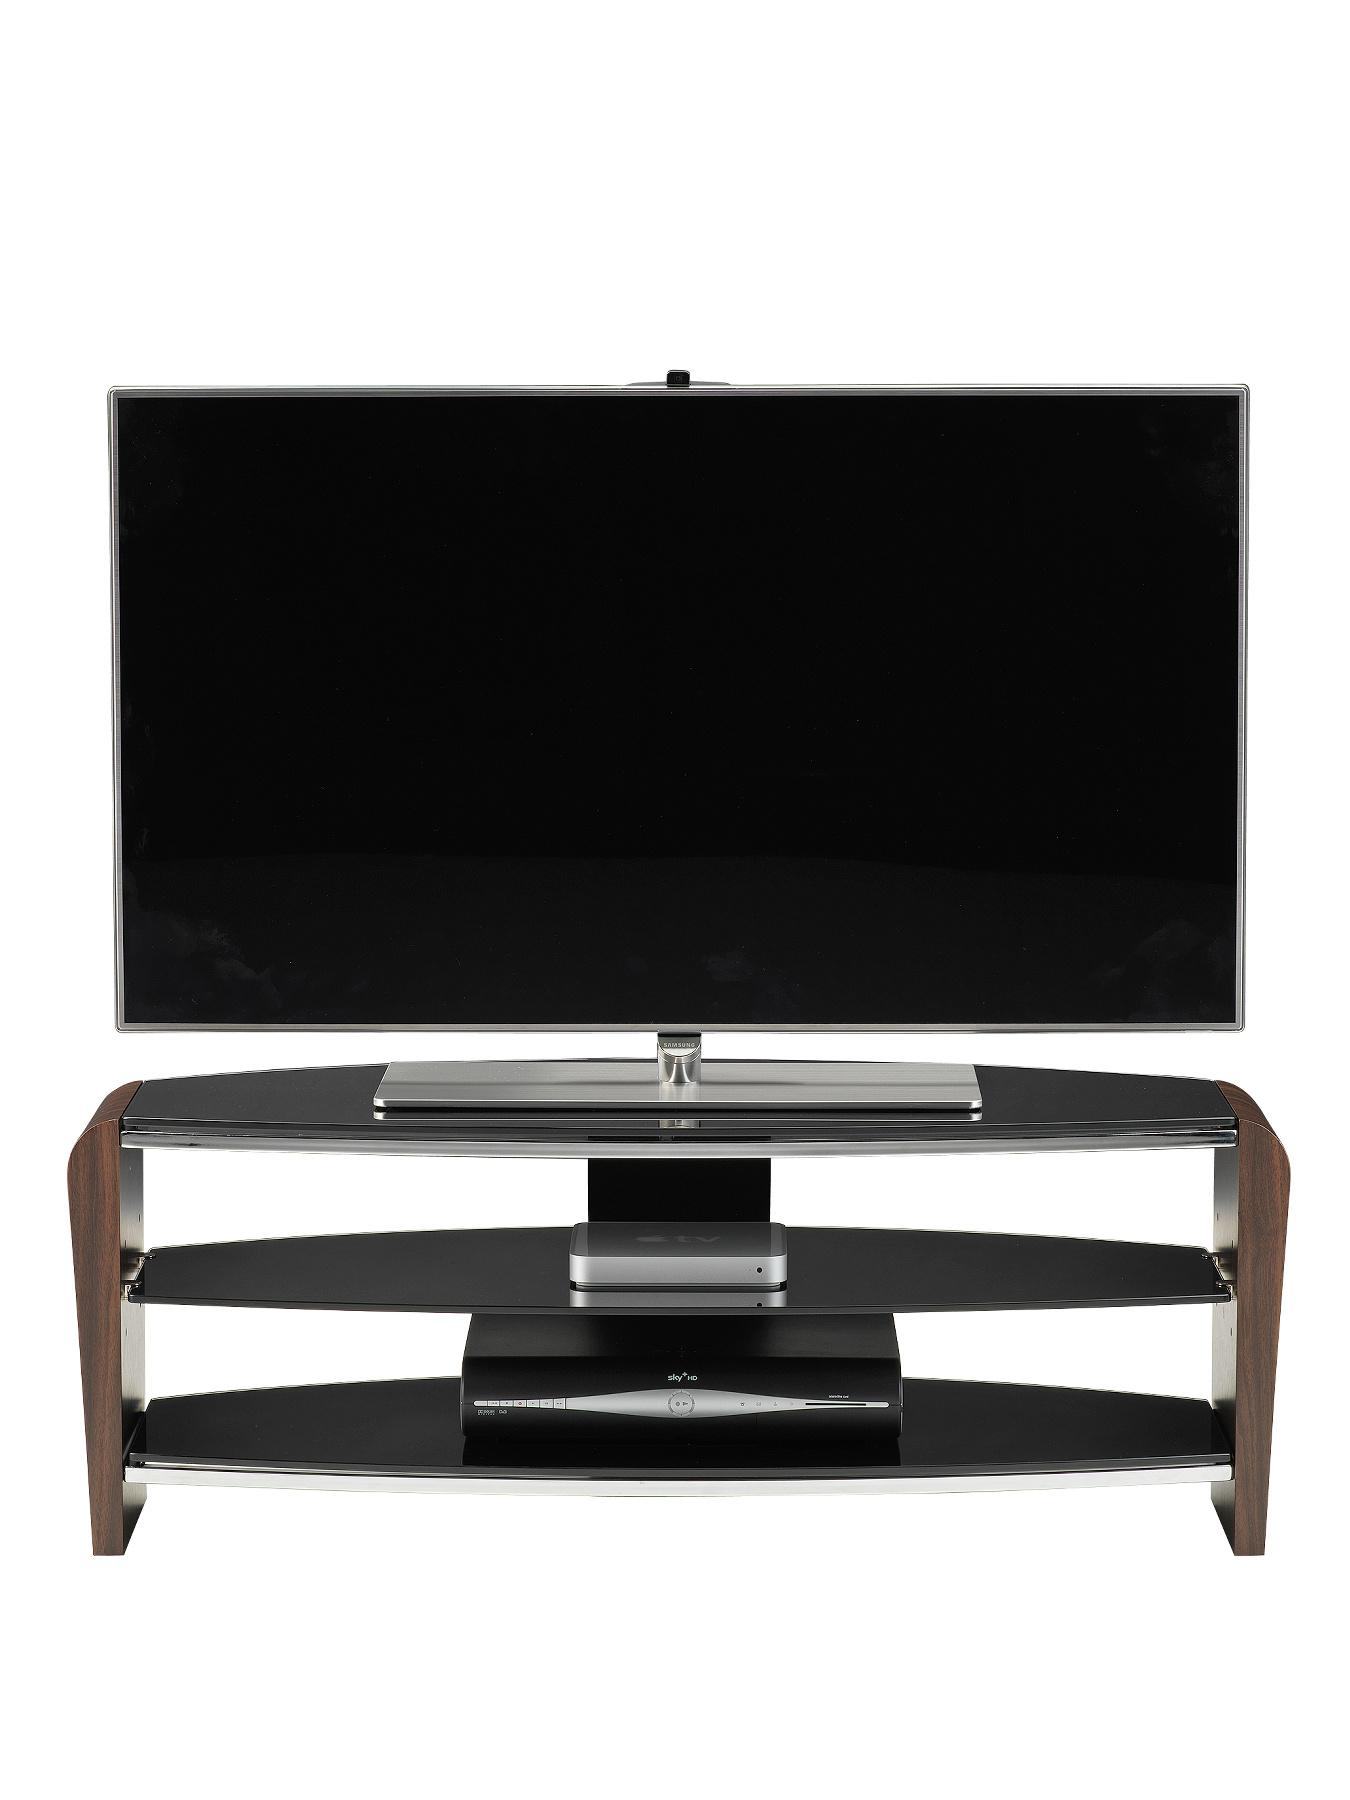 Alphason Francium 1100mm TV Stand - fits up to 50 inch TV - Walnut